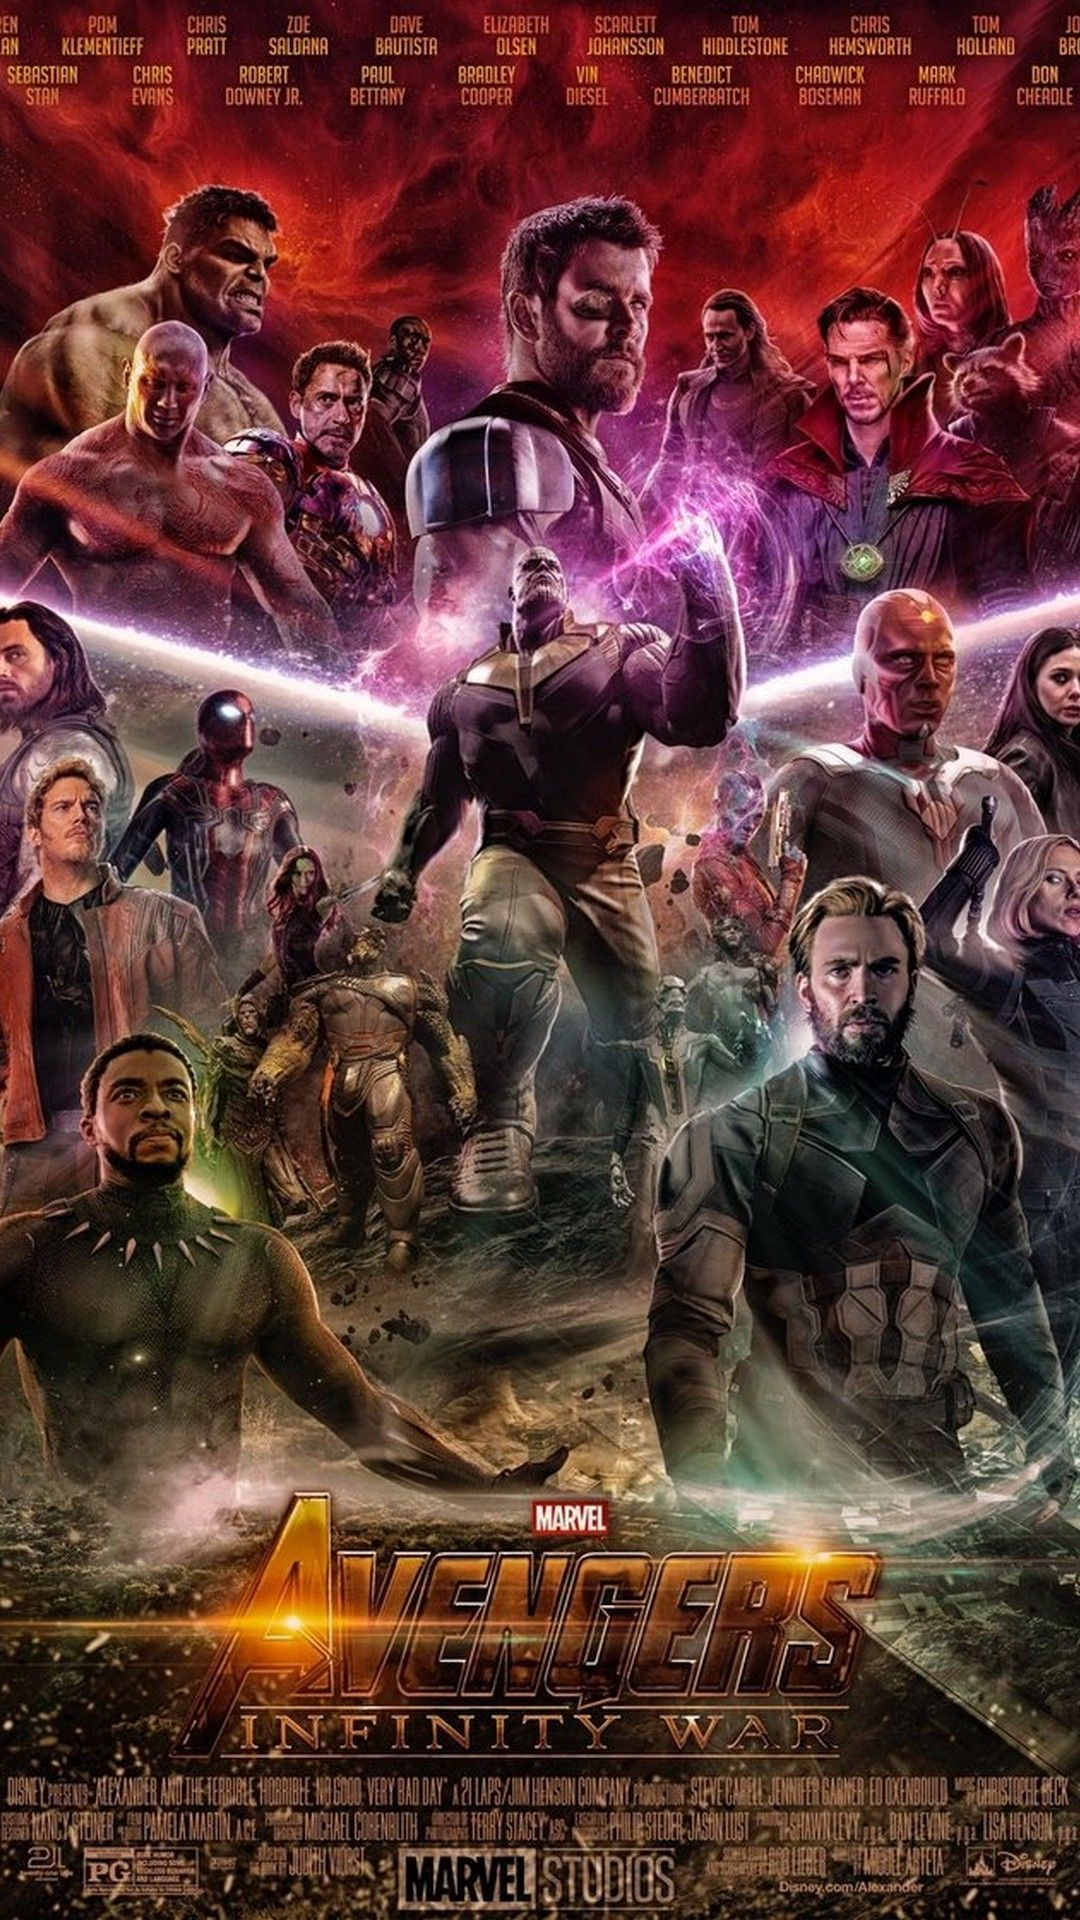 Pin By Zenzone On Iphone Wallpapers Avengers Infinity War